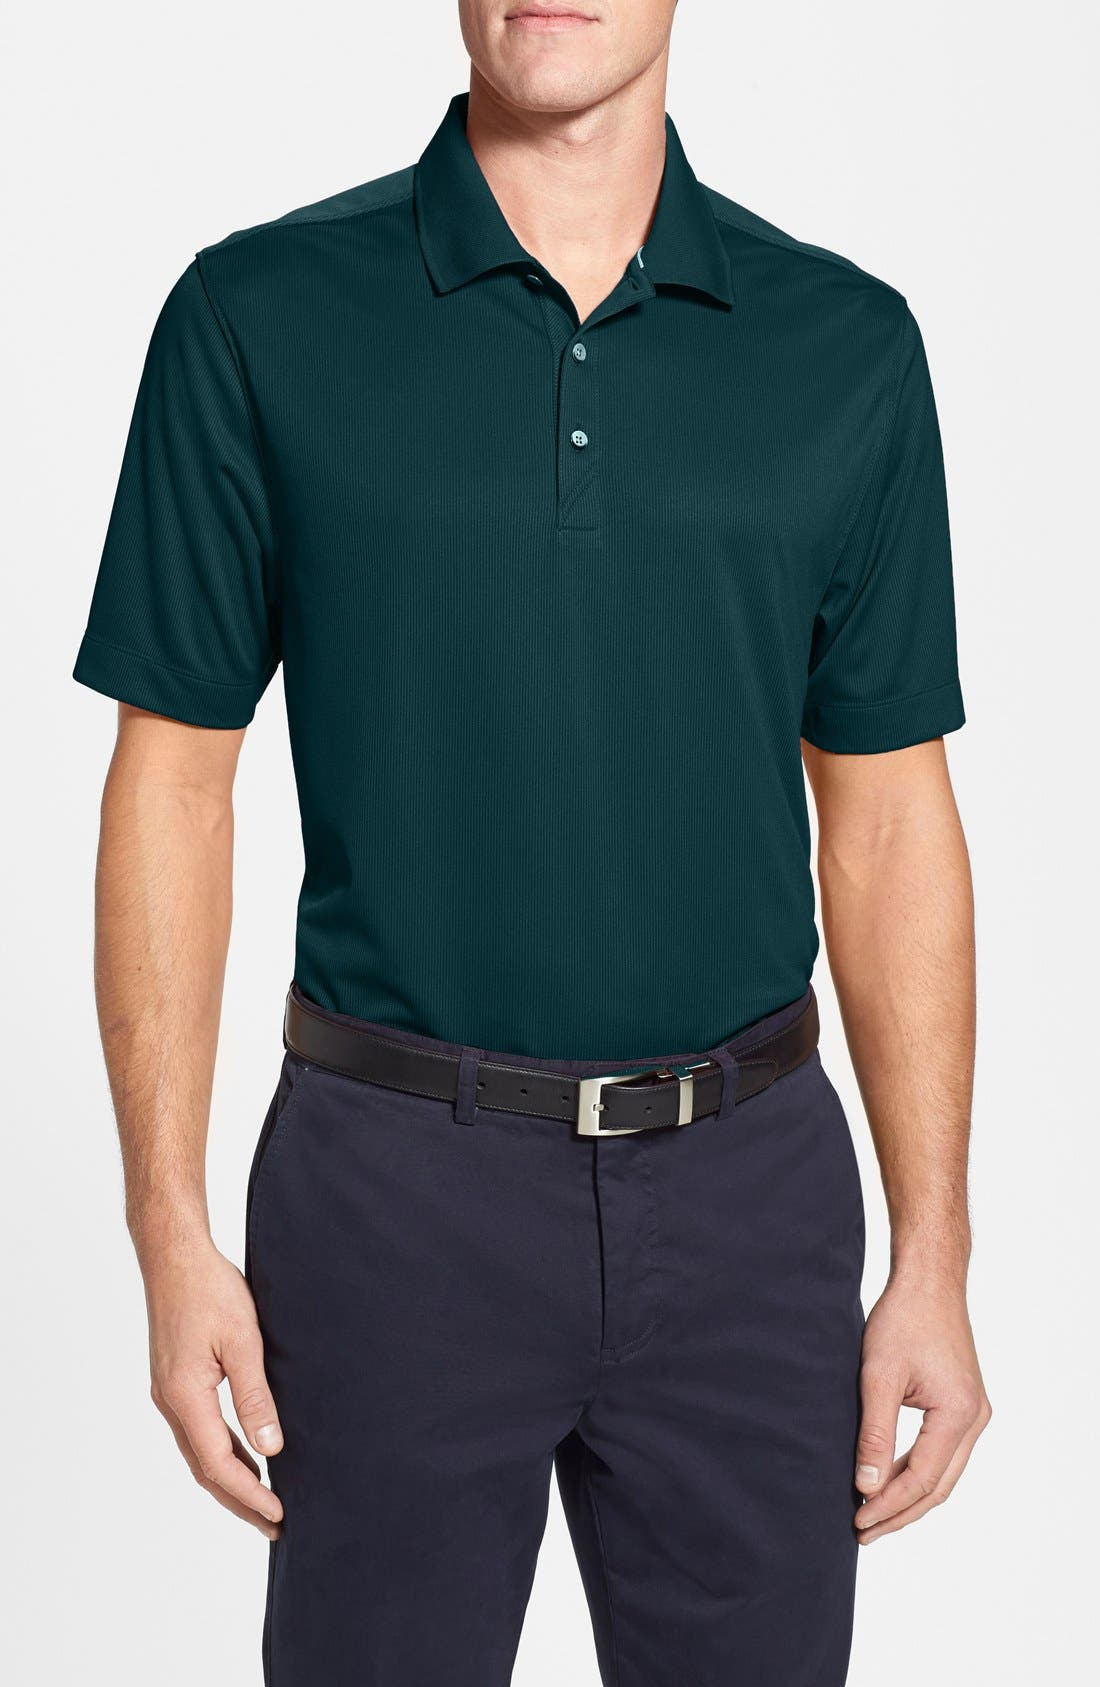 CUTTER & BUCK 'Glendale' DryTec Moisture Wicking Polo